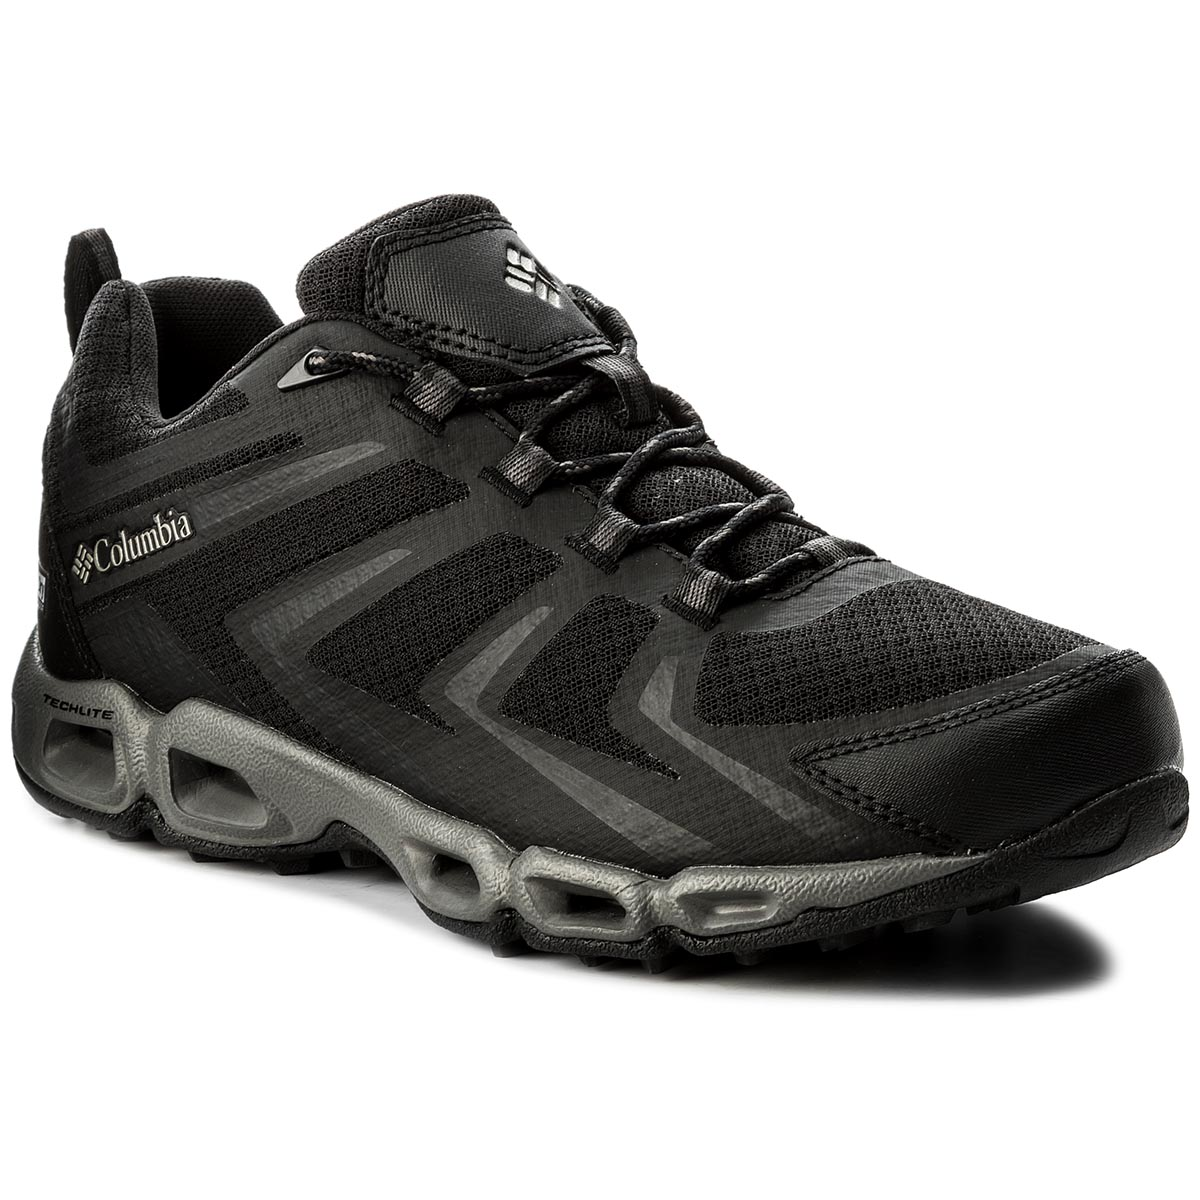 Trekkings COLUMBIA - Ventrailia 3 Low OutDry BM4600 Black/Lux 010